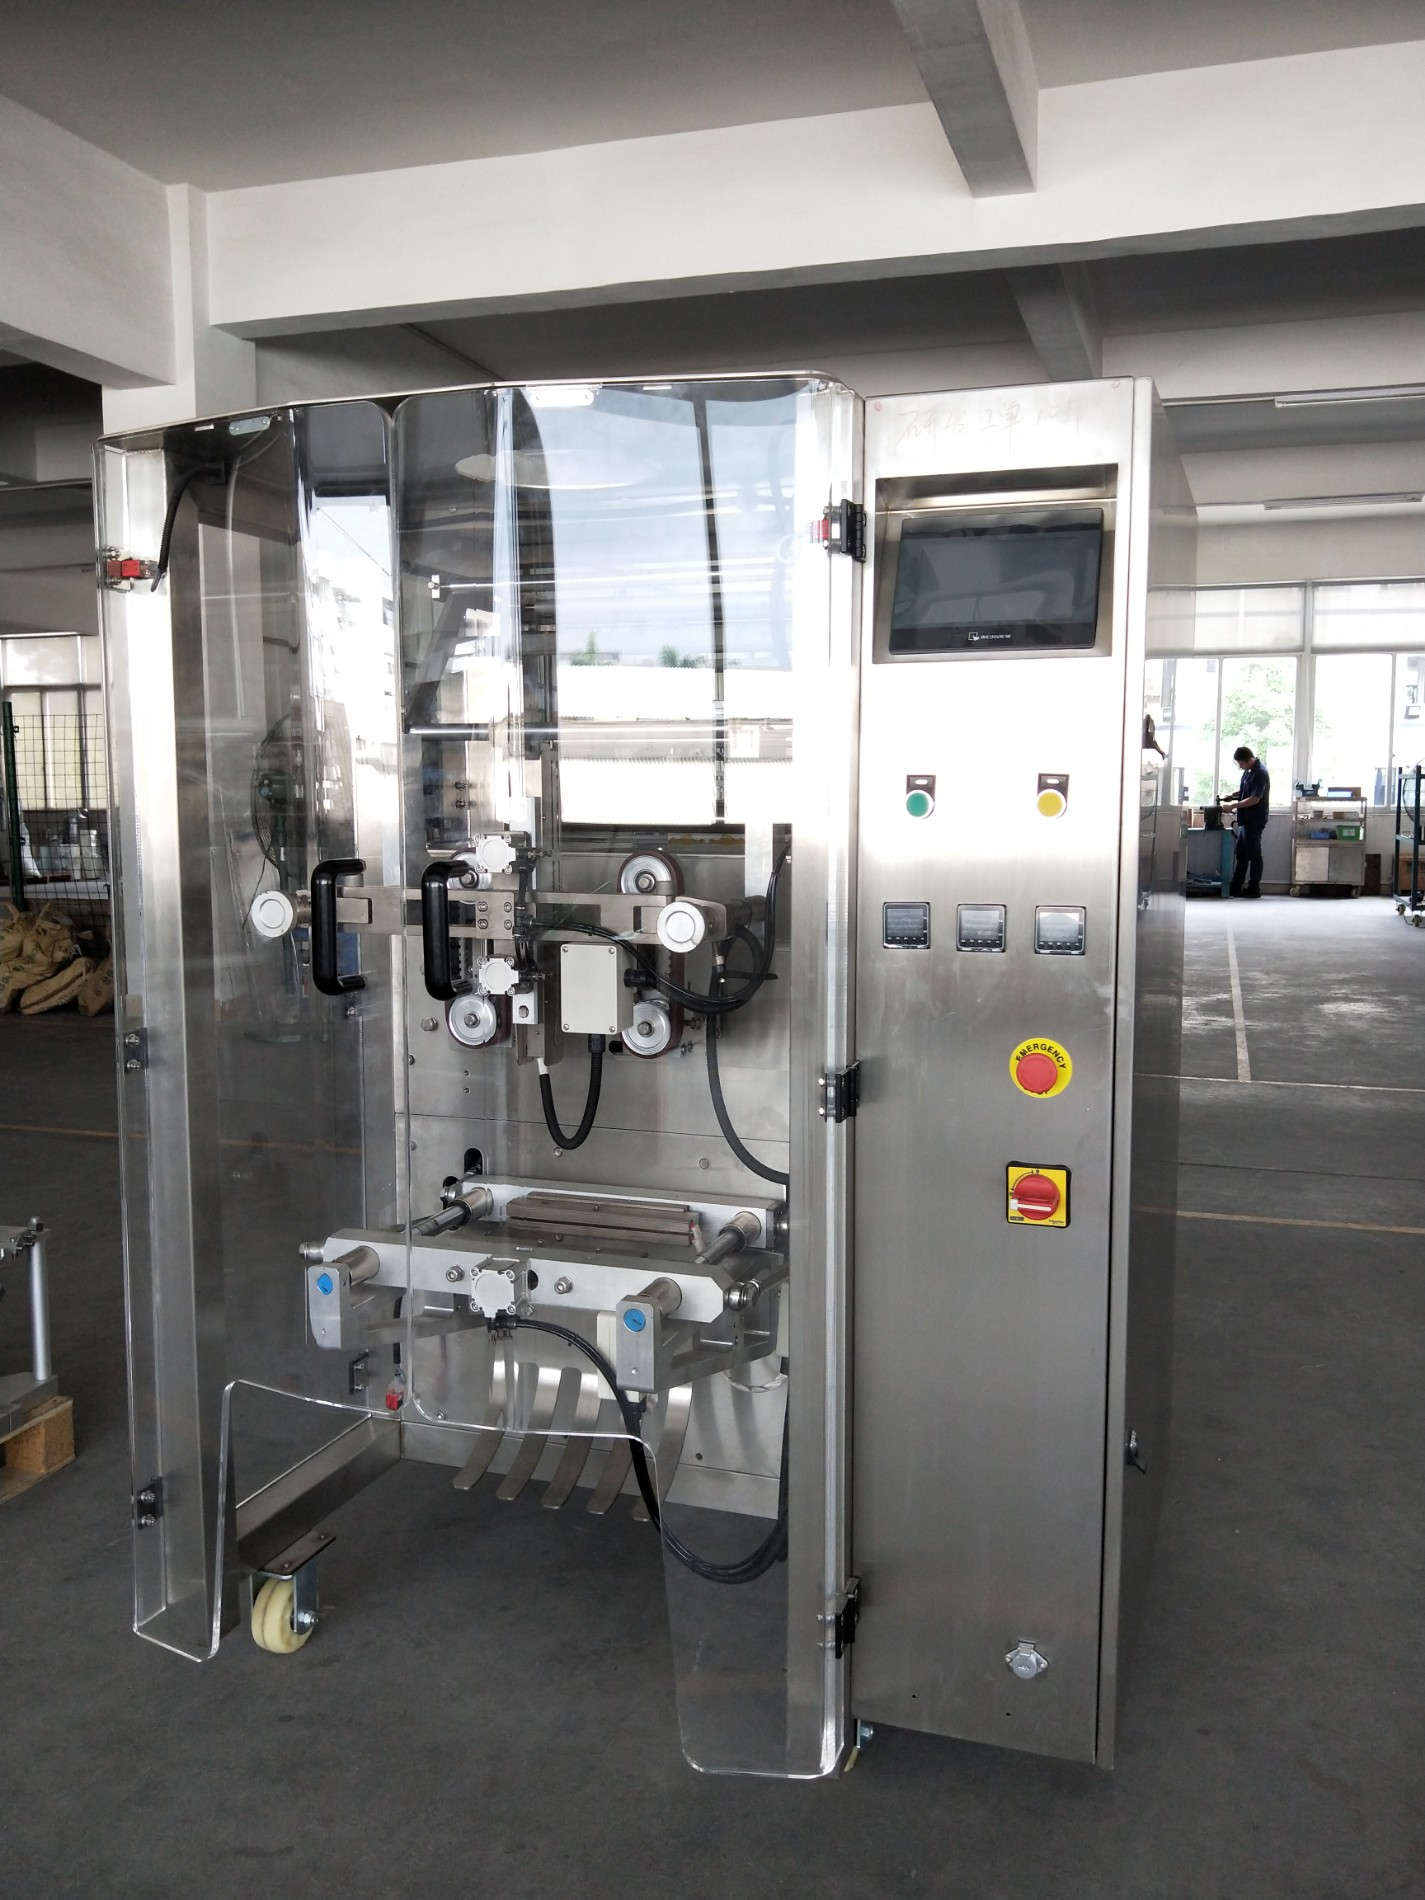 Low Cost VFFS Packaging Machine For Packing Puffed Food Manufacturers, Low Cost VFFS Packaging Machine For Packing Puffed Food Factory, Supply Low Cost VFFS Packaging Machine For Packing Puffed Food